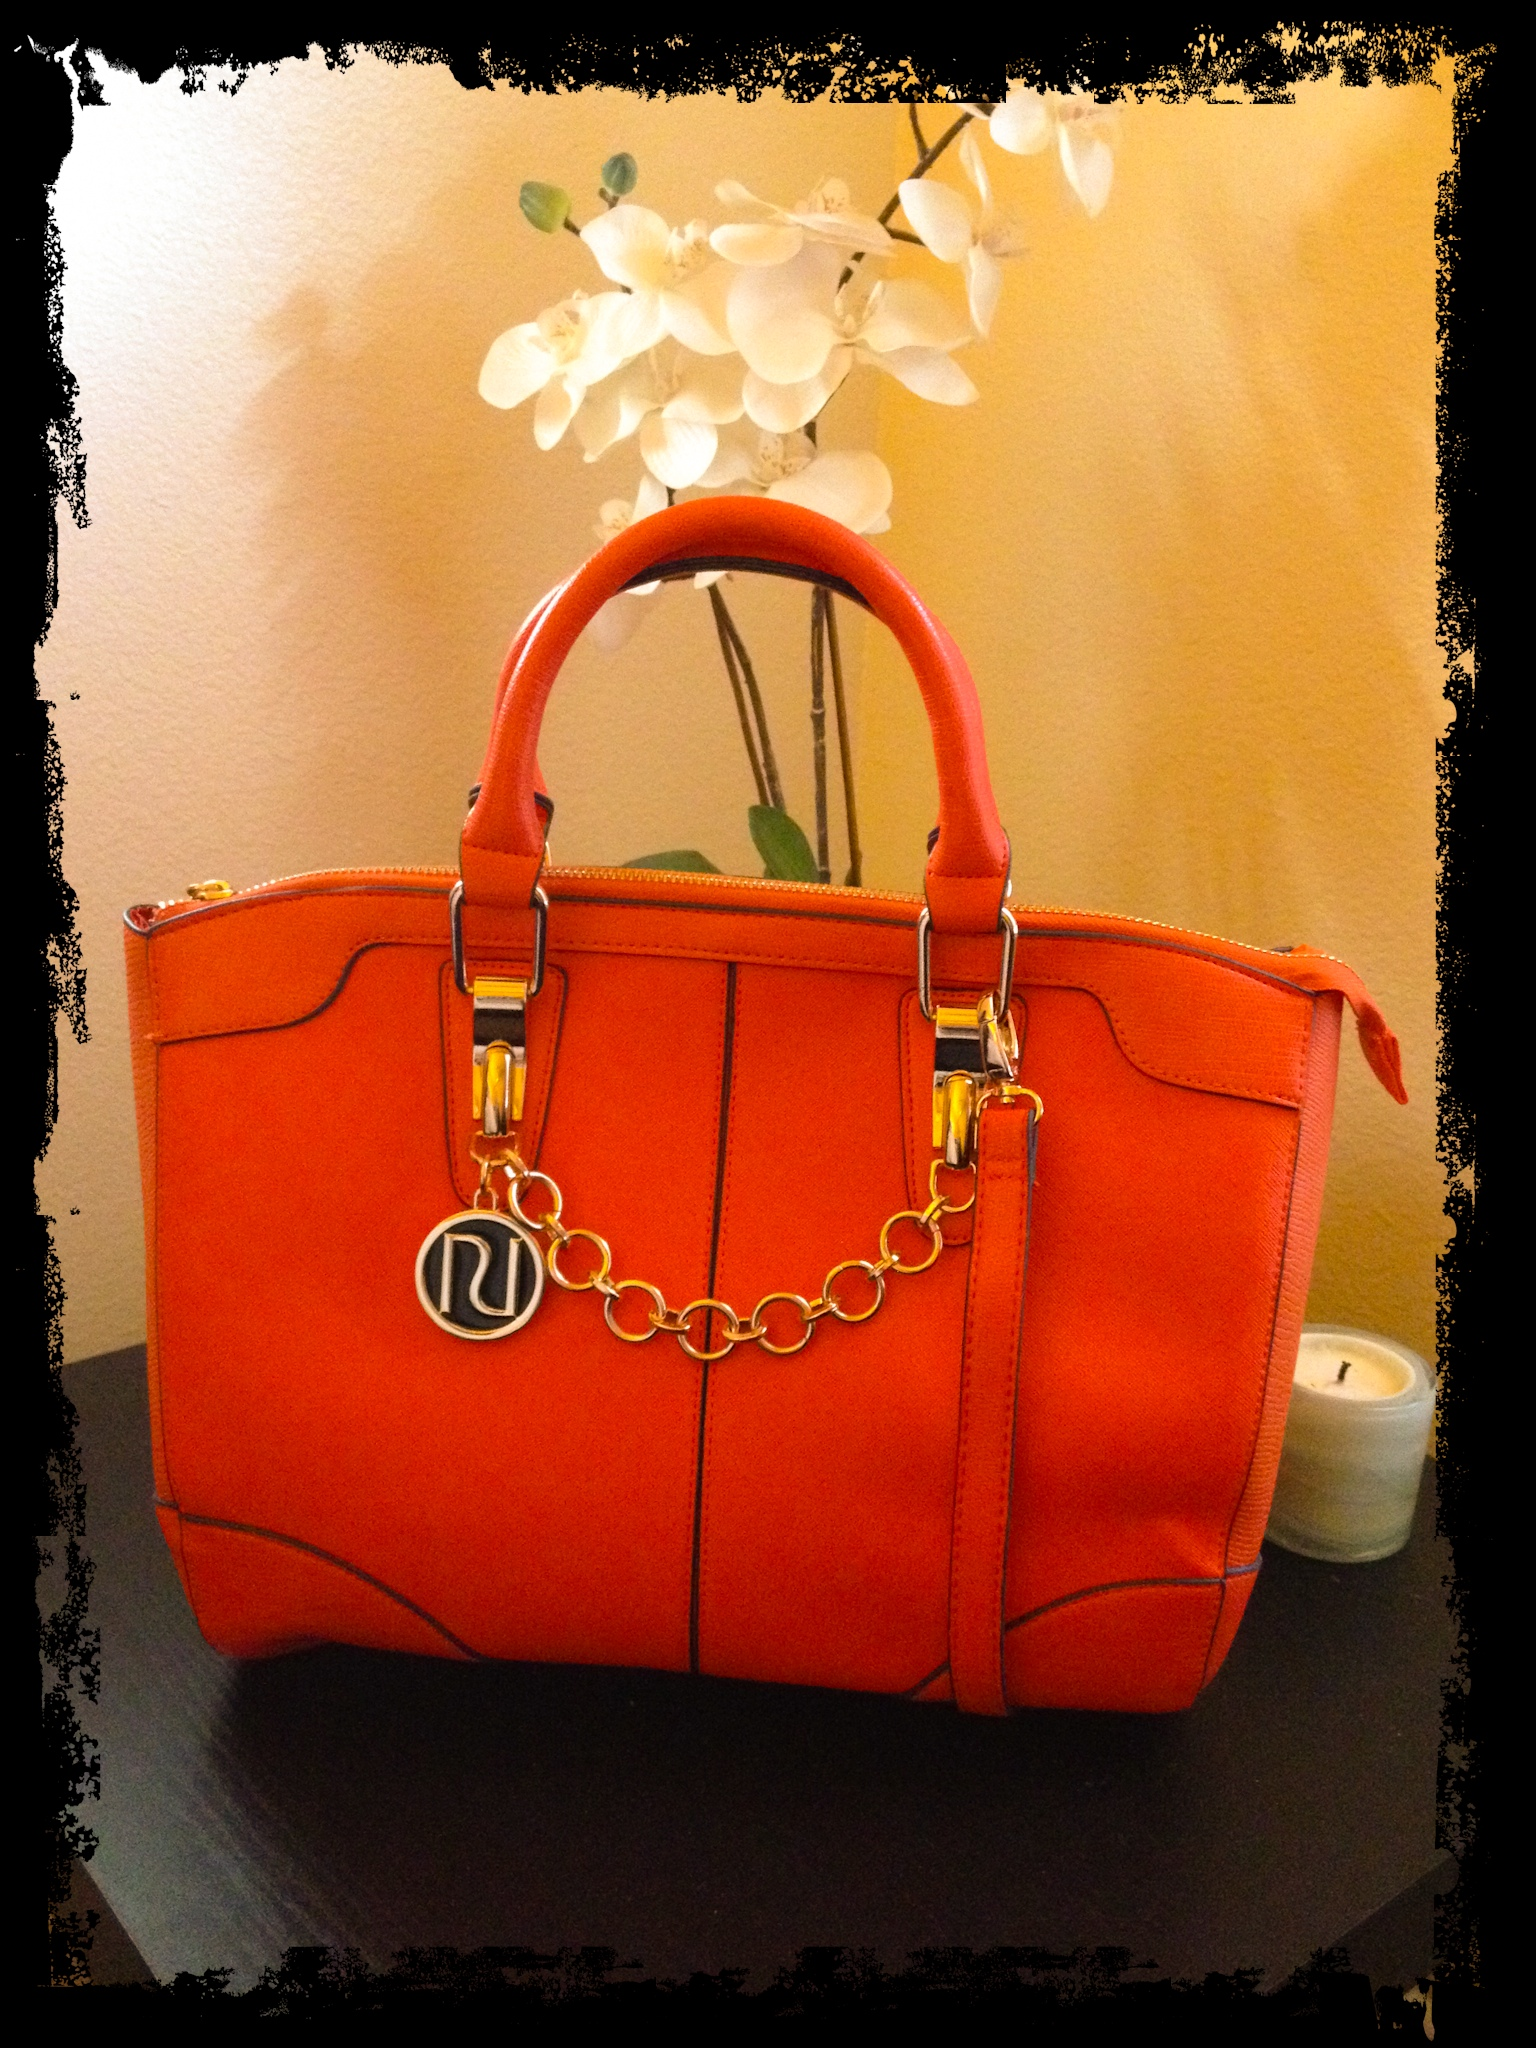 Ping Online Asos I Found This Gorgeous Orange Bowler Bag From River Island